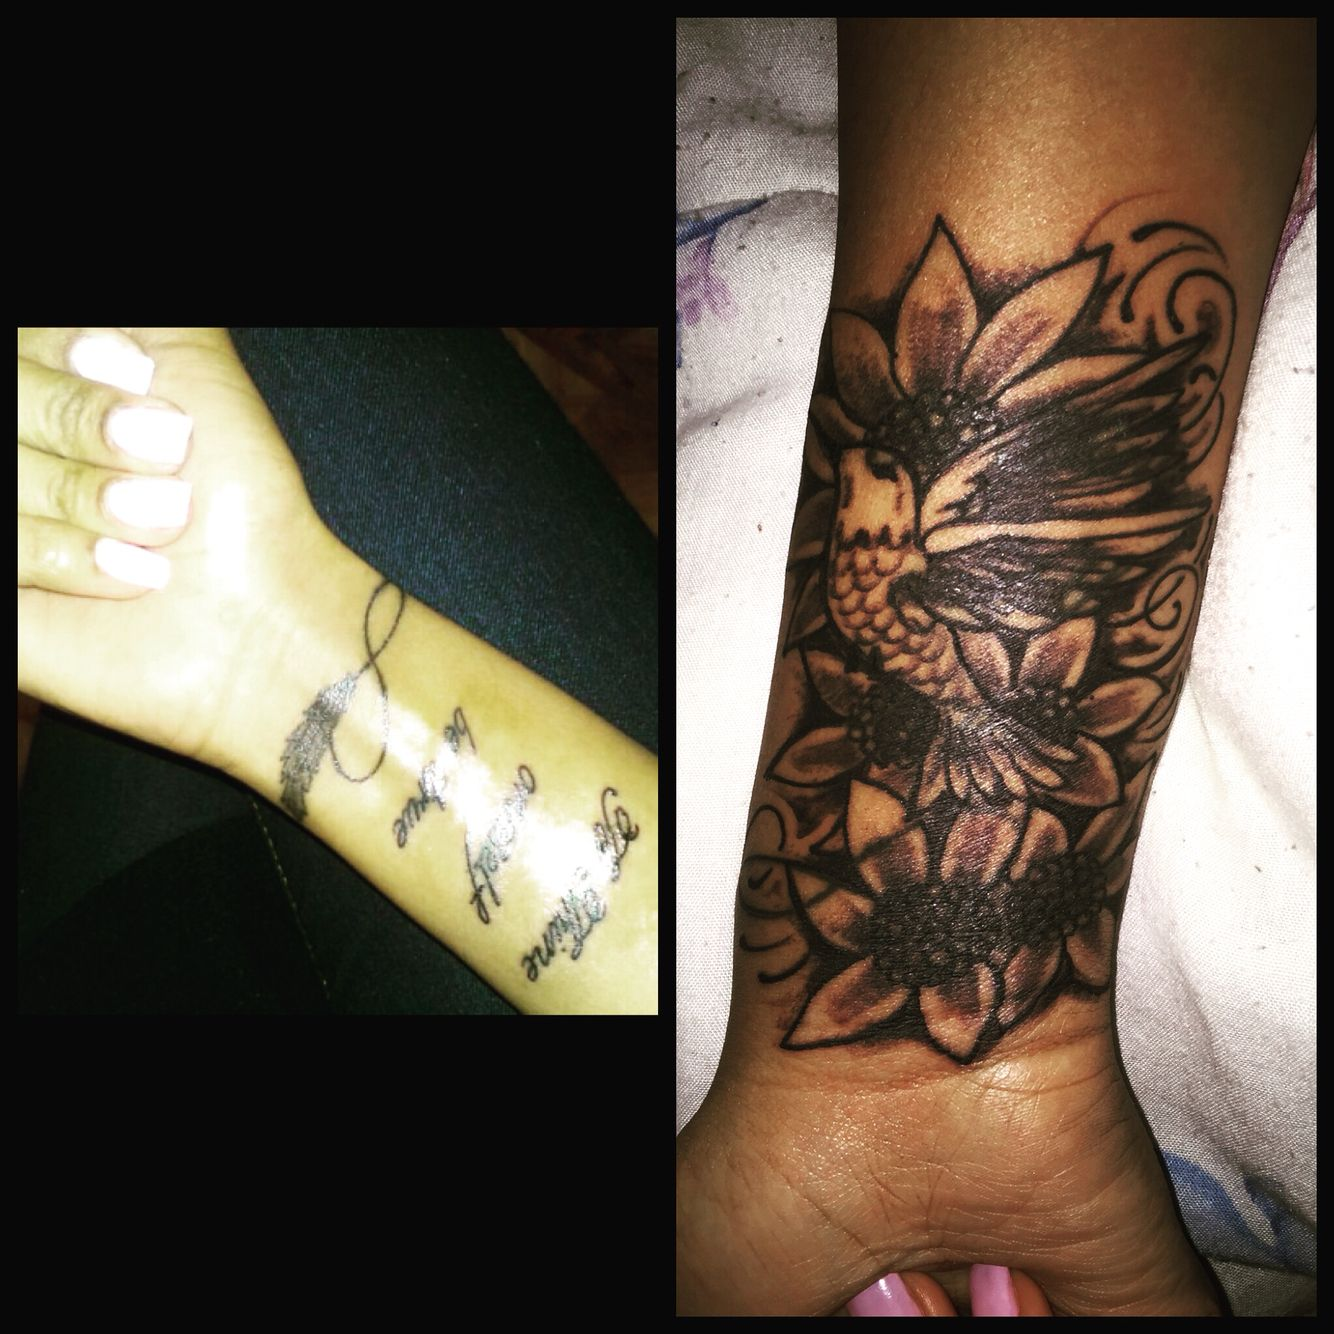 Tattoo Cover Ups Tattoo Cover Up Pinterest Tattoo covering